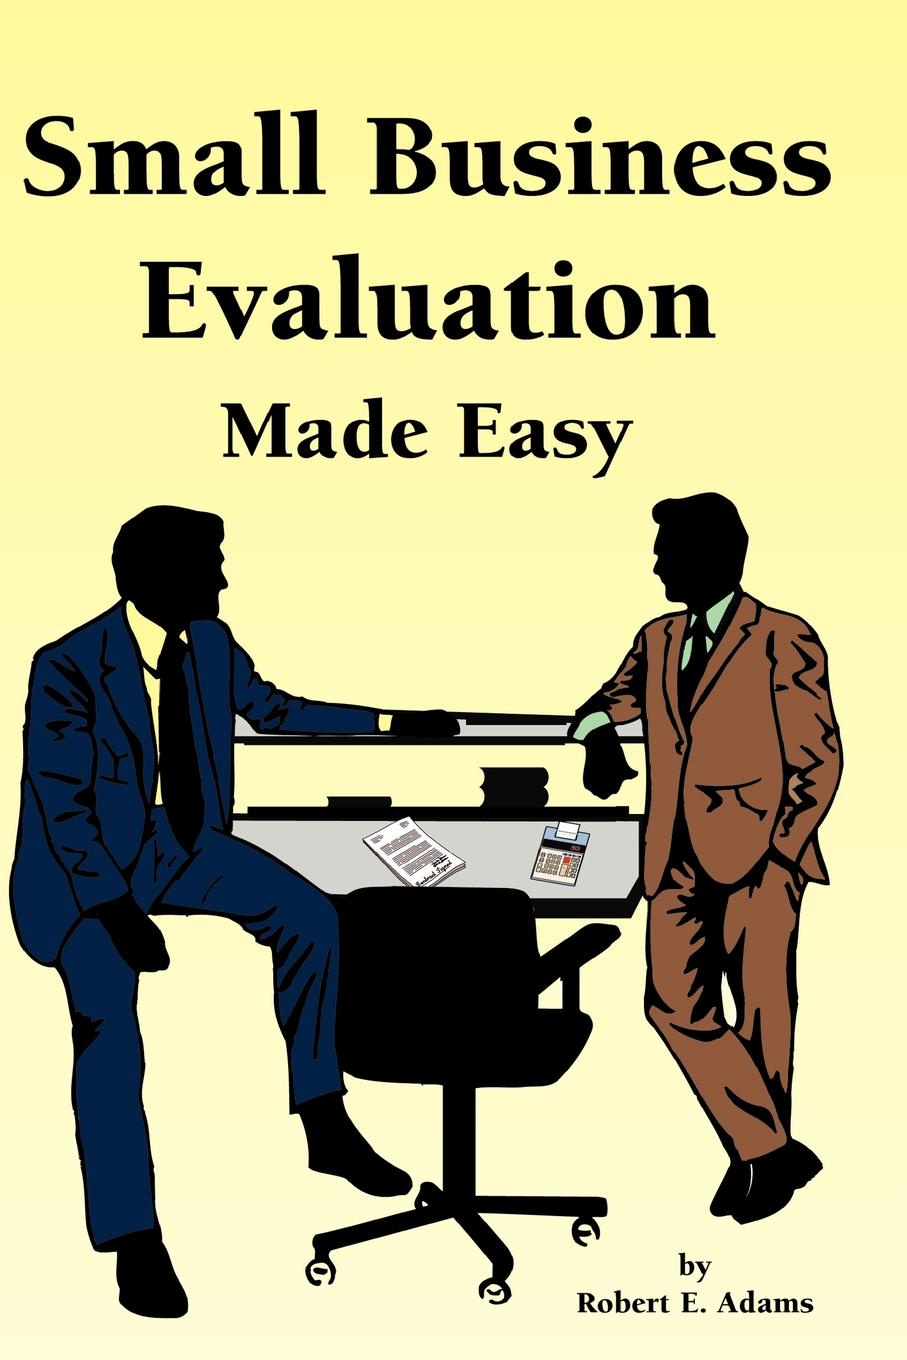 Robert E. Adams Small Business Evaluation Made Easy